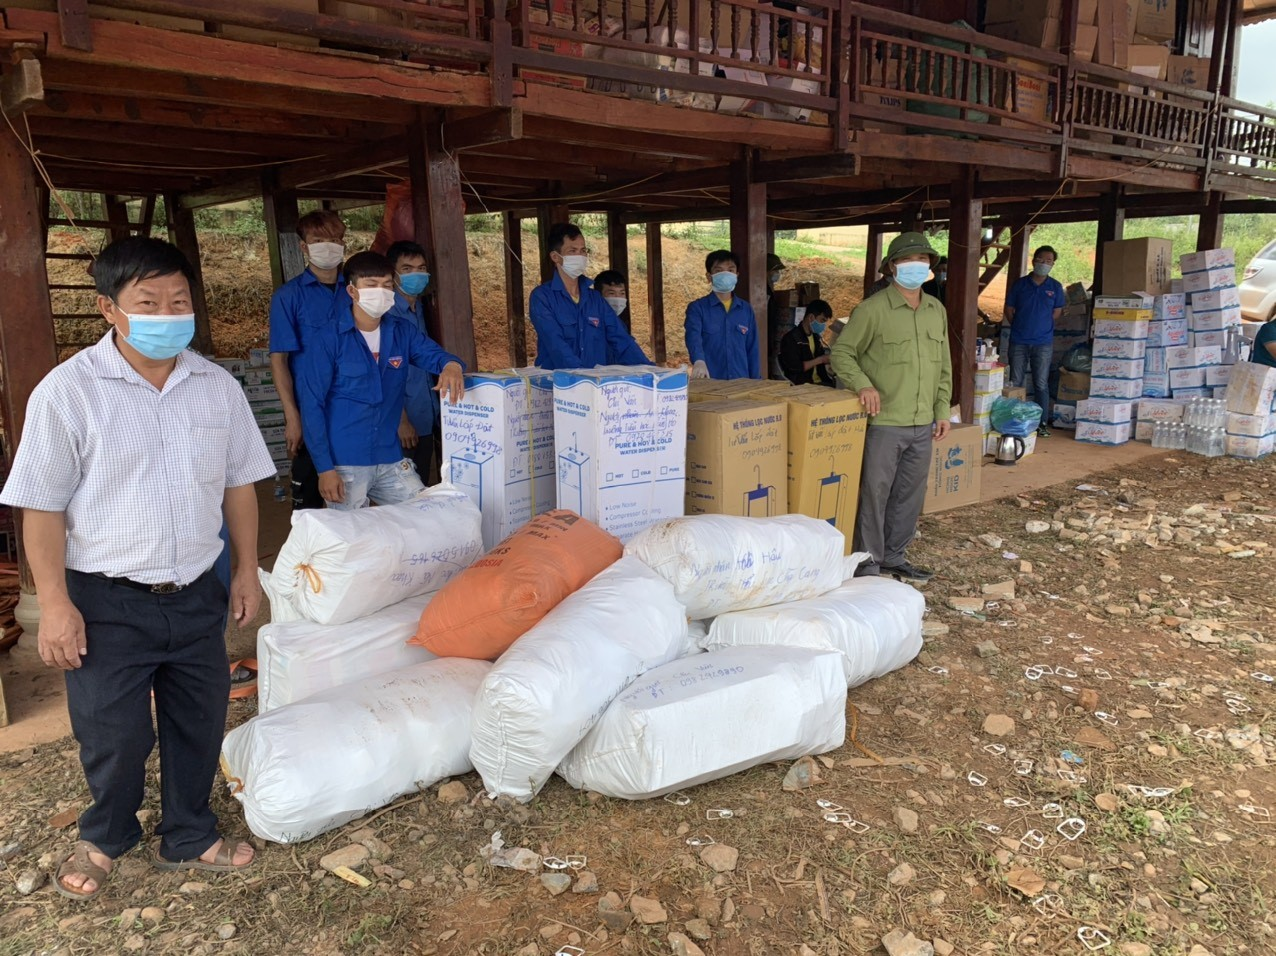 Medical masks, medicines, water purifiers and essential items are given to the children